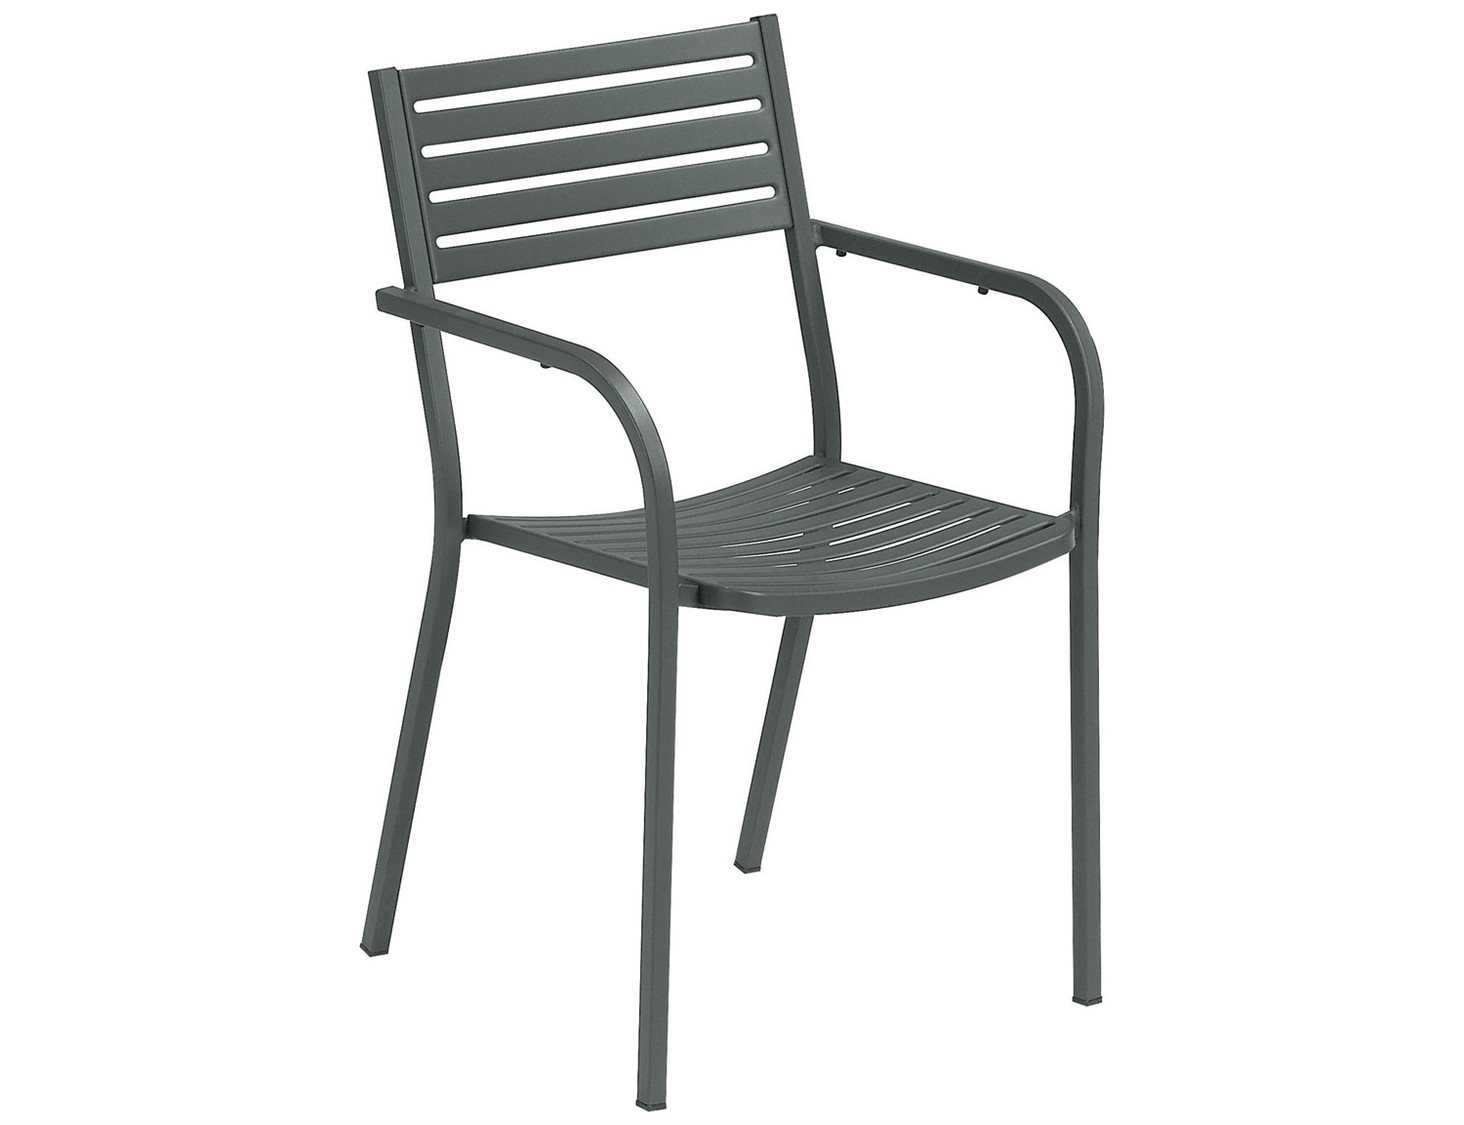 Emu Chairs Emu Segno Steel Stacking Arm Chair Sold In 4 268